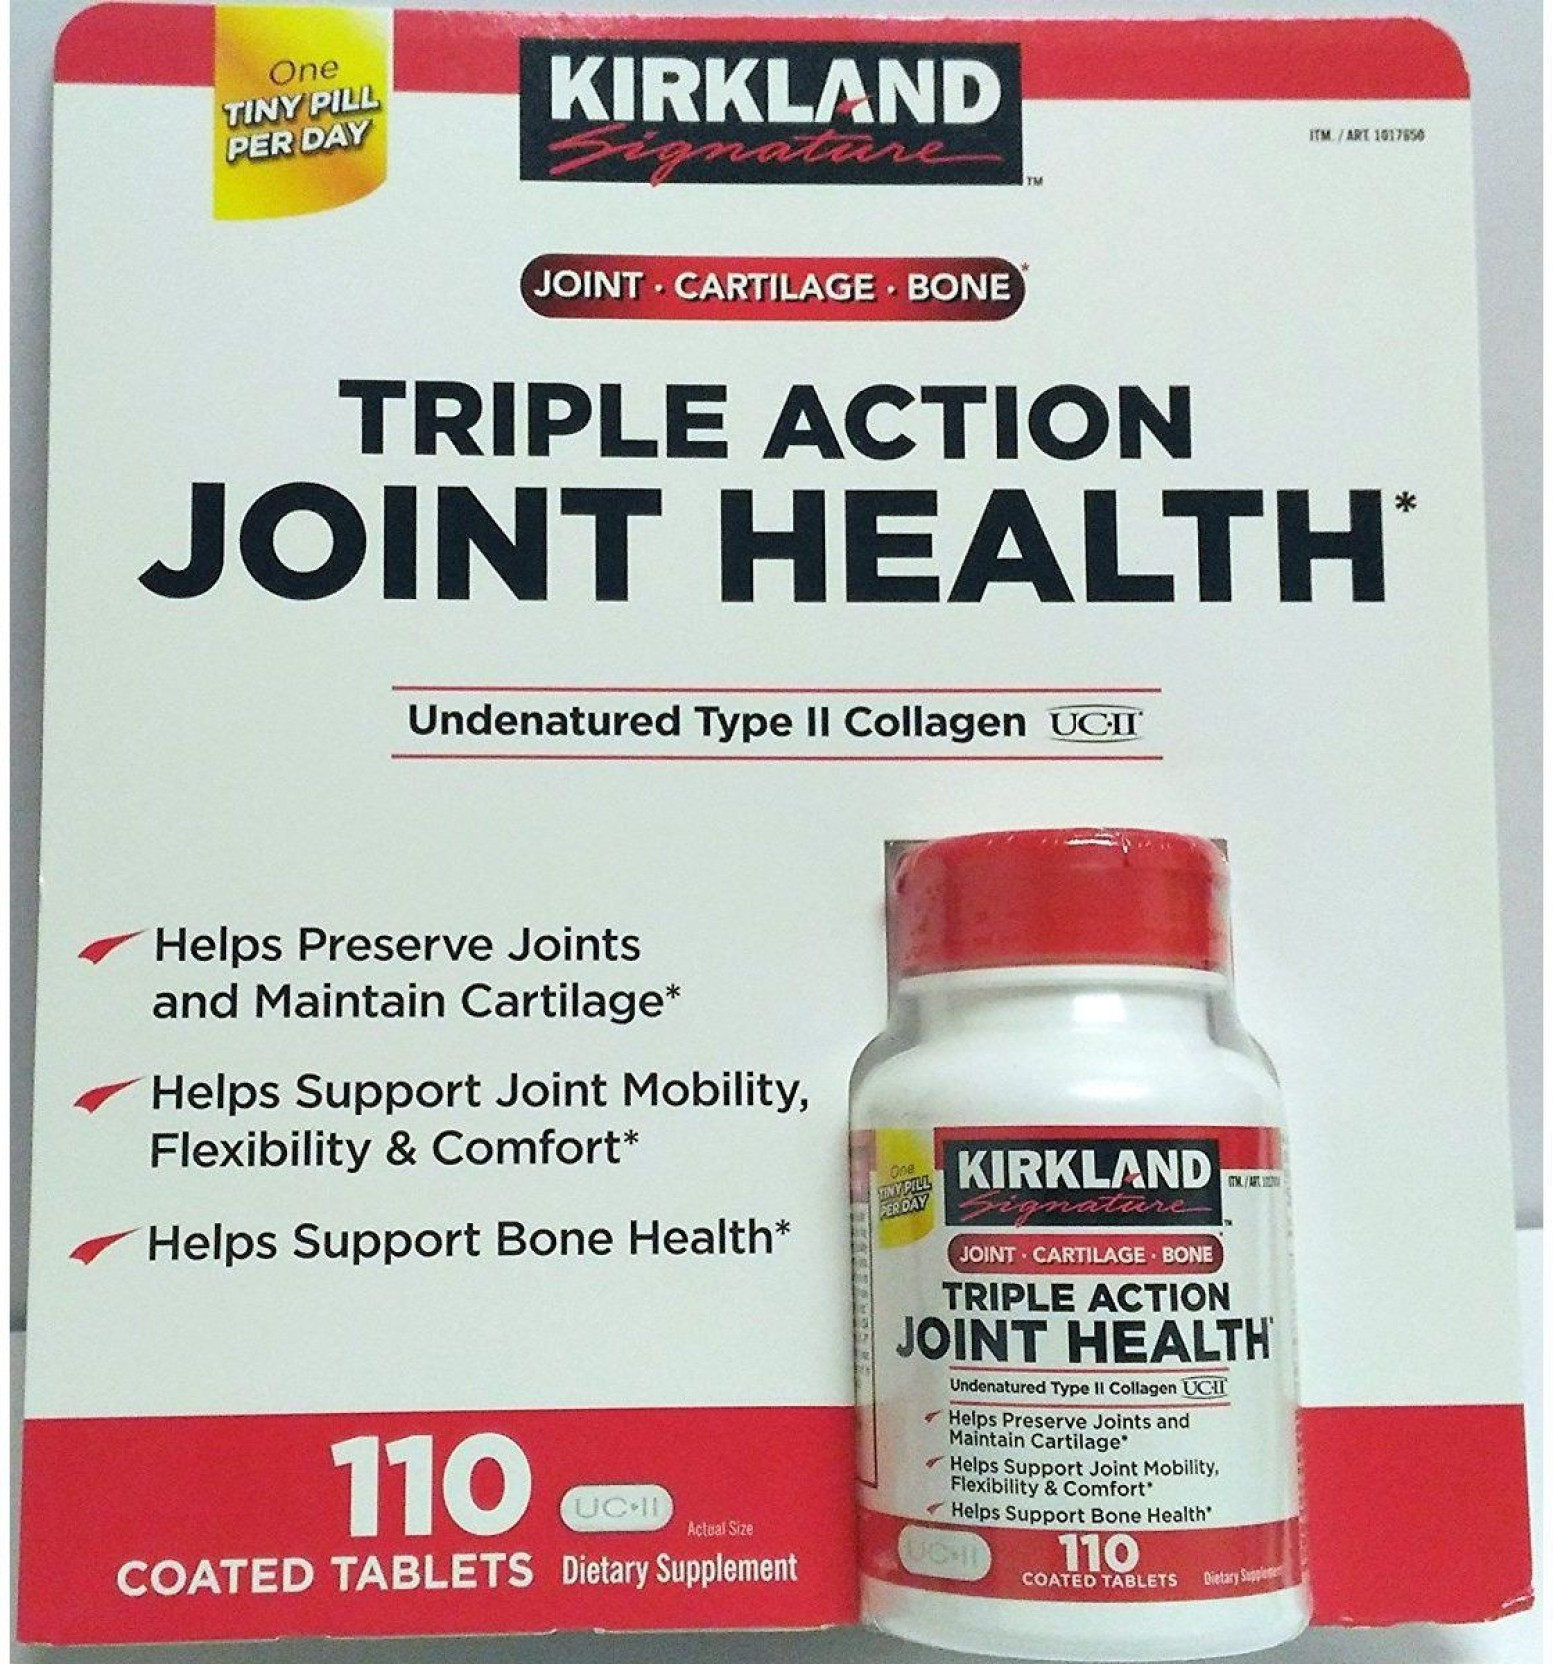 Kirkland Signature New Triple Action Joint Health Price In India Extra Strength Glucosamine Hci 1500mg With Msm Add To Cart